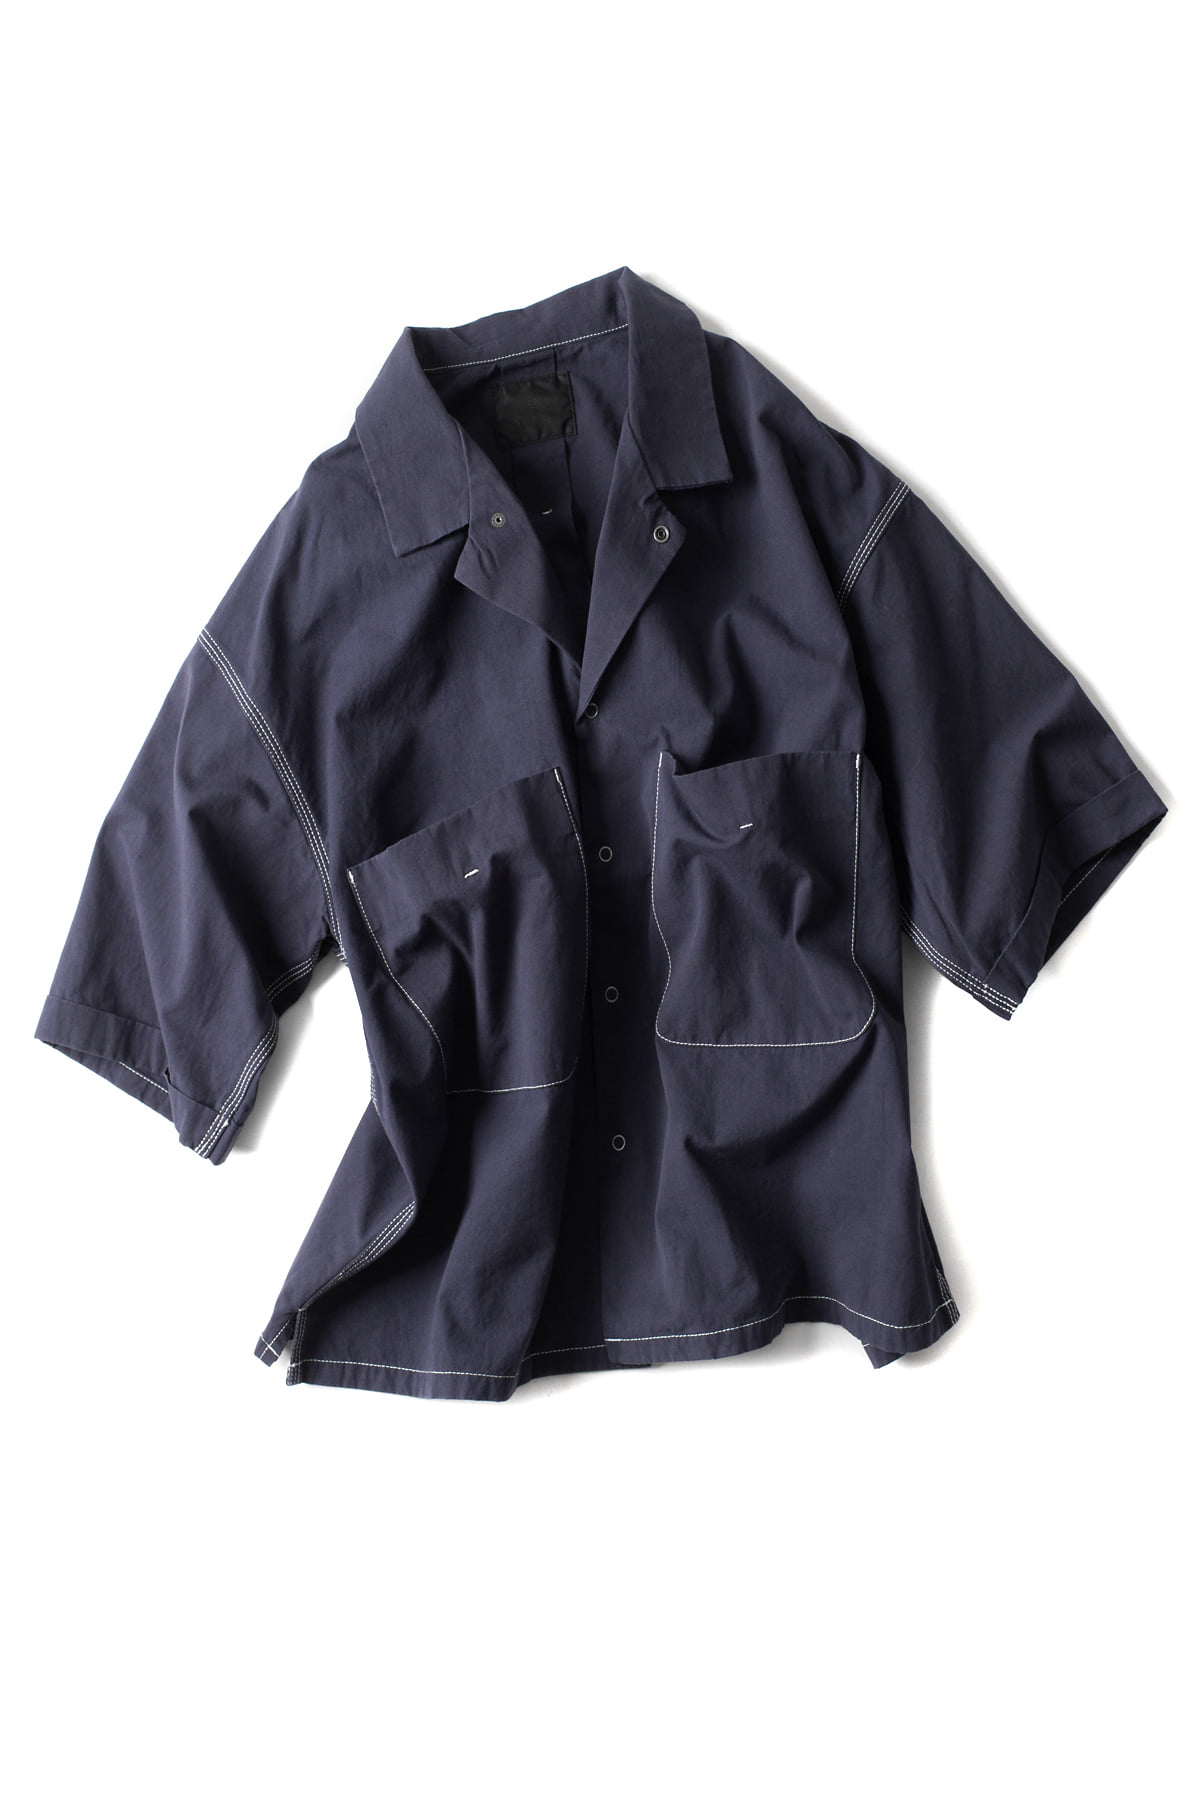 bukht : Work Shirts (Navy)